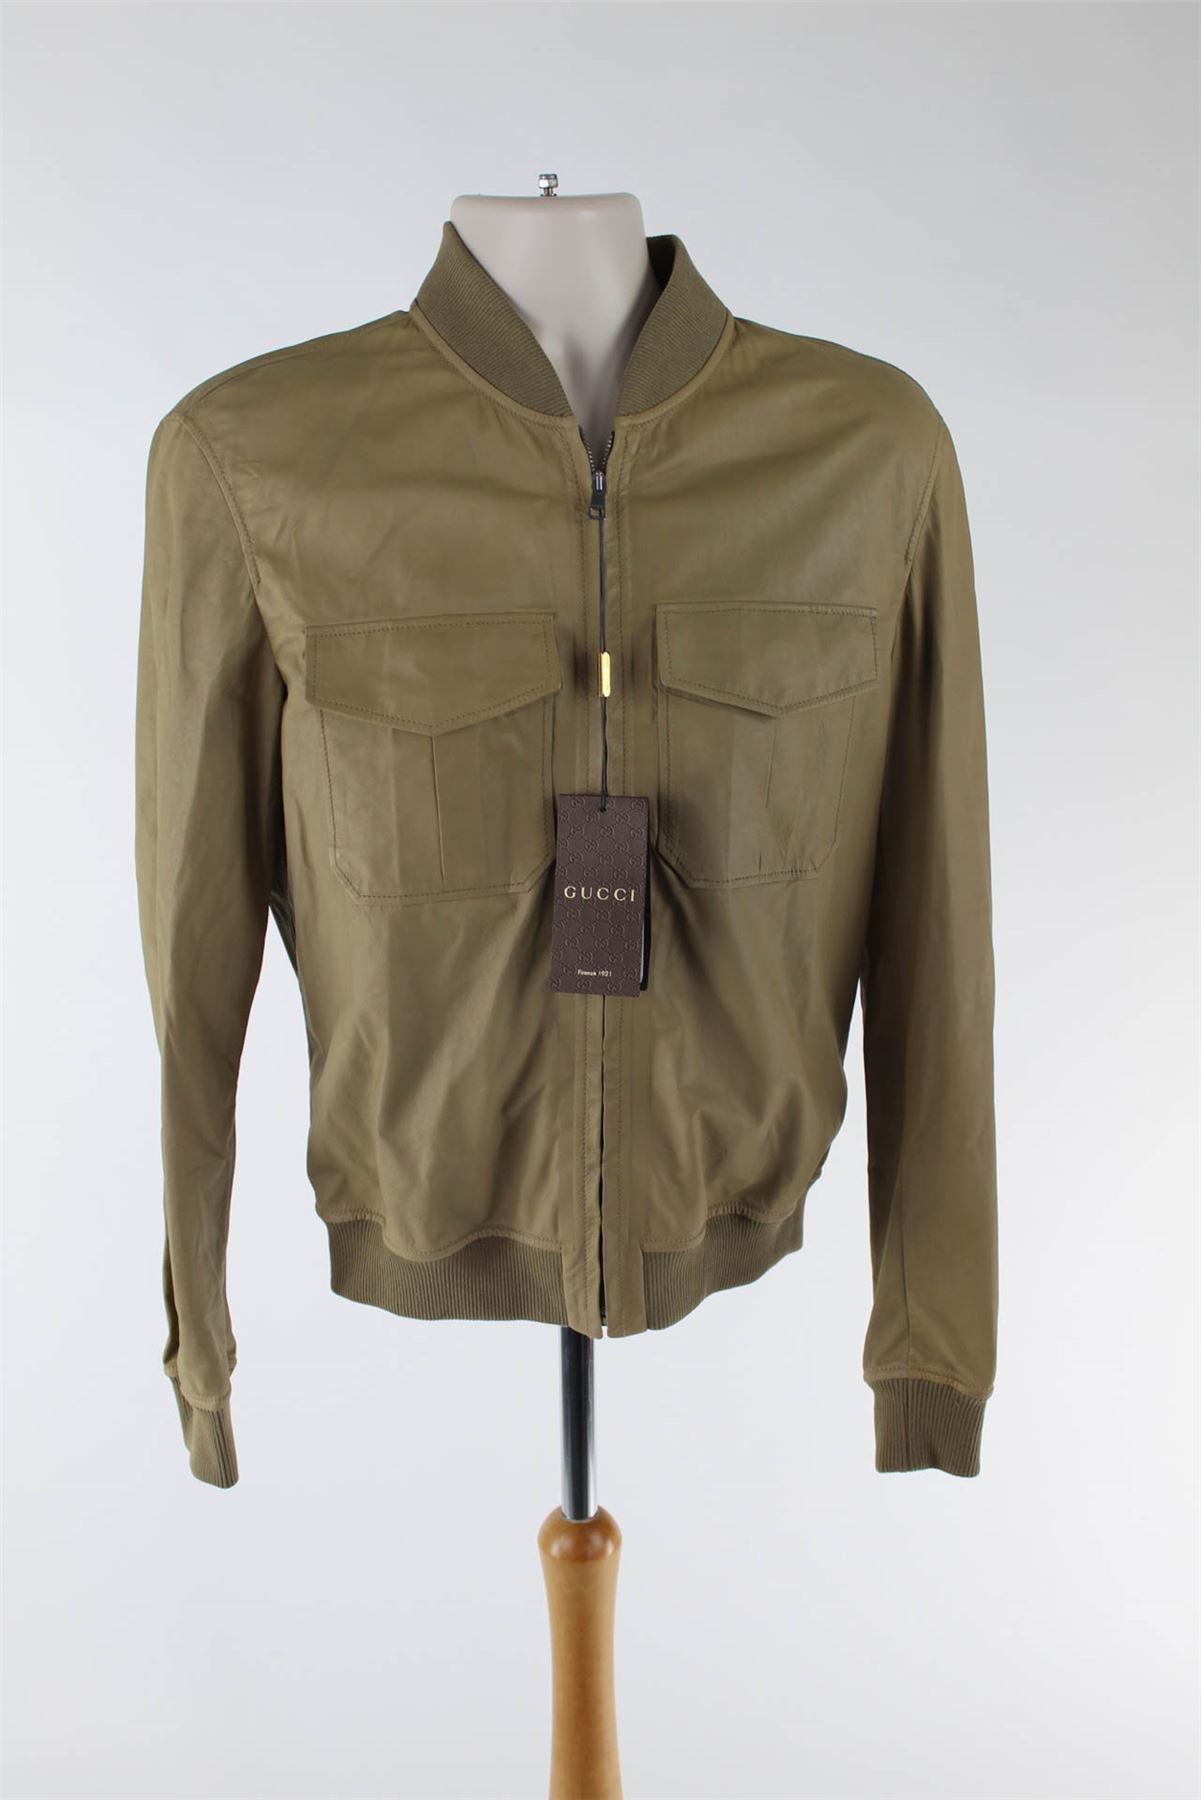 Details about GUCCI Beige Leather Bomber Jacket 80fe55b7a